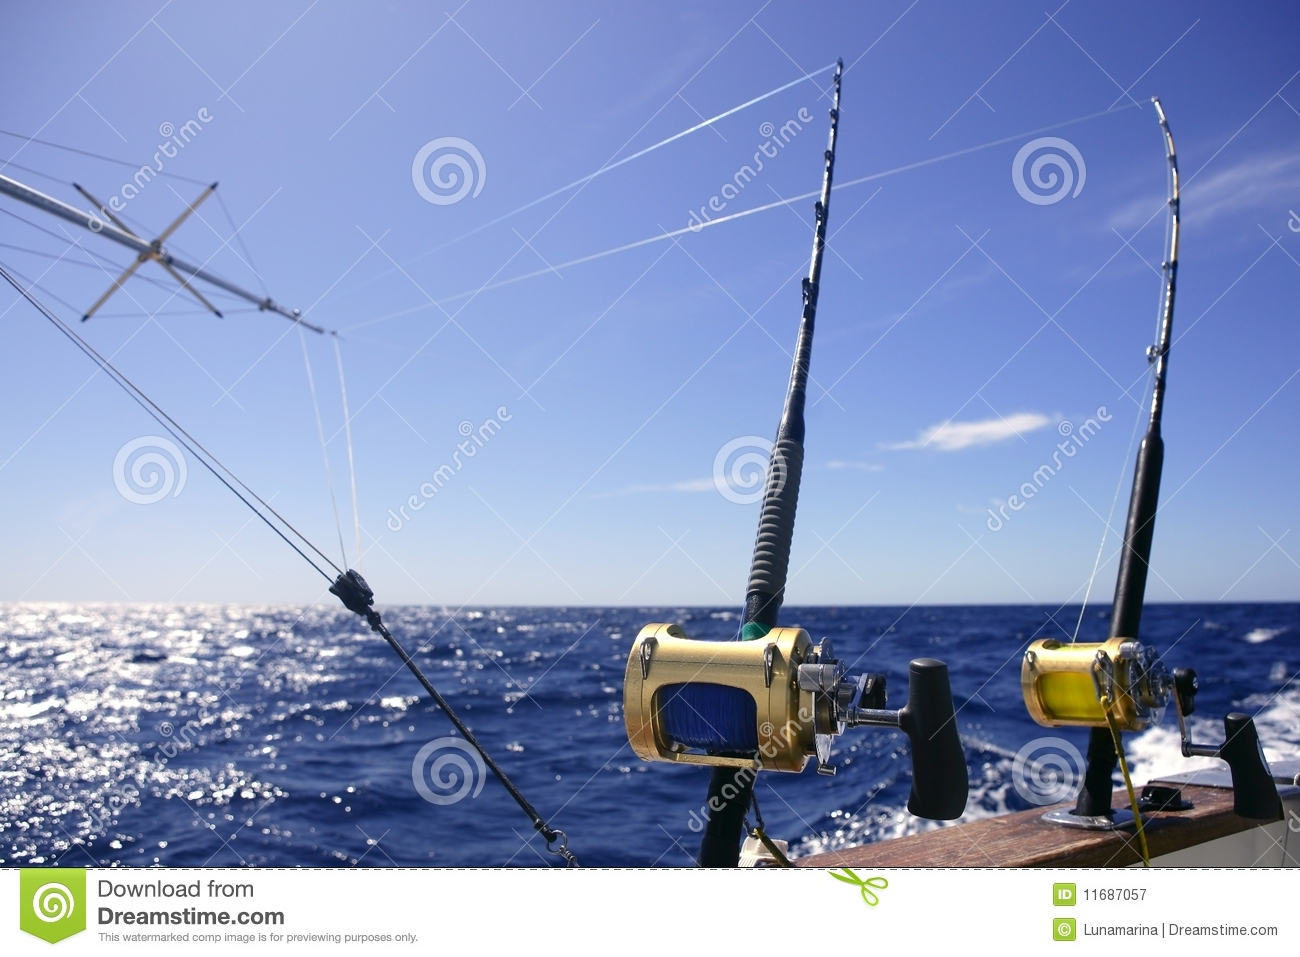 Big game boat fishing in deep sea stock image image for Fishing boat games